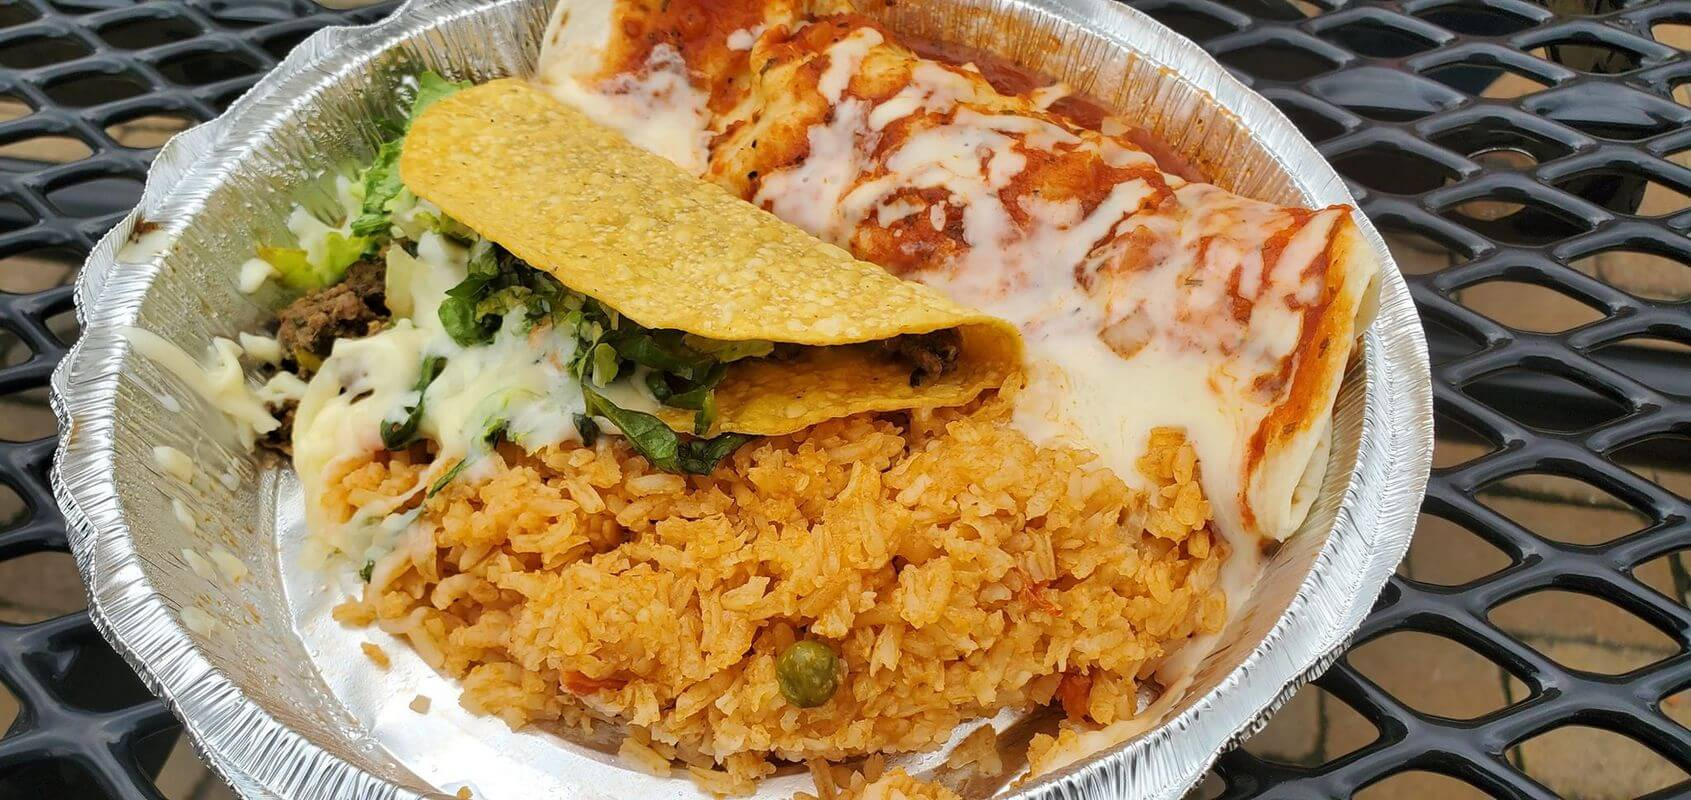 Lunch Special from El Pedregal Mexican Restaurant